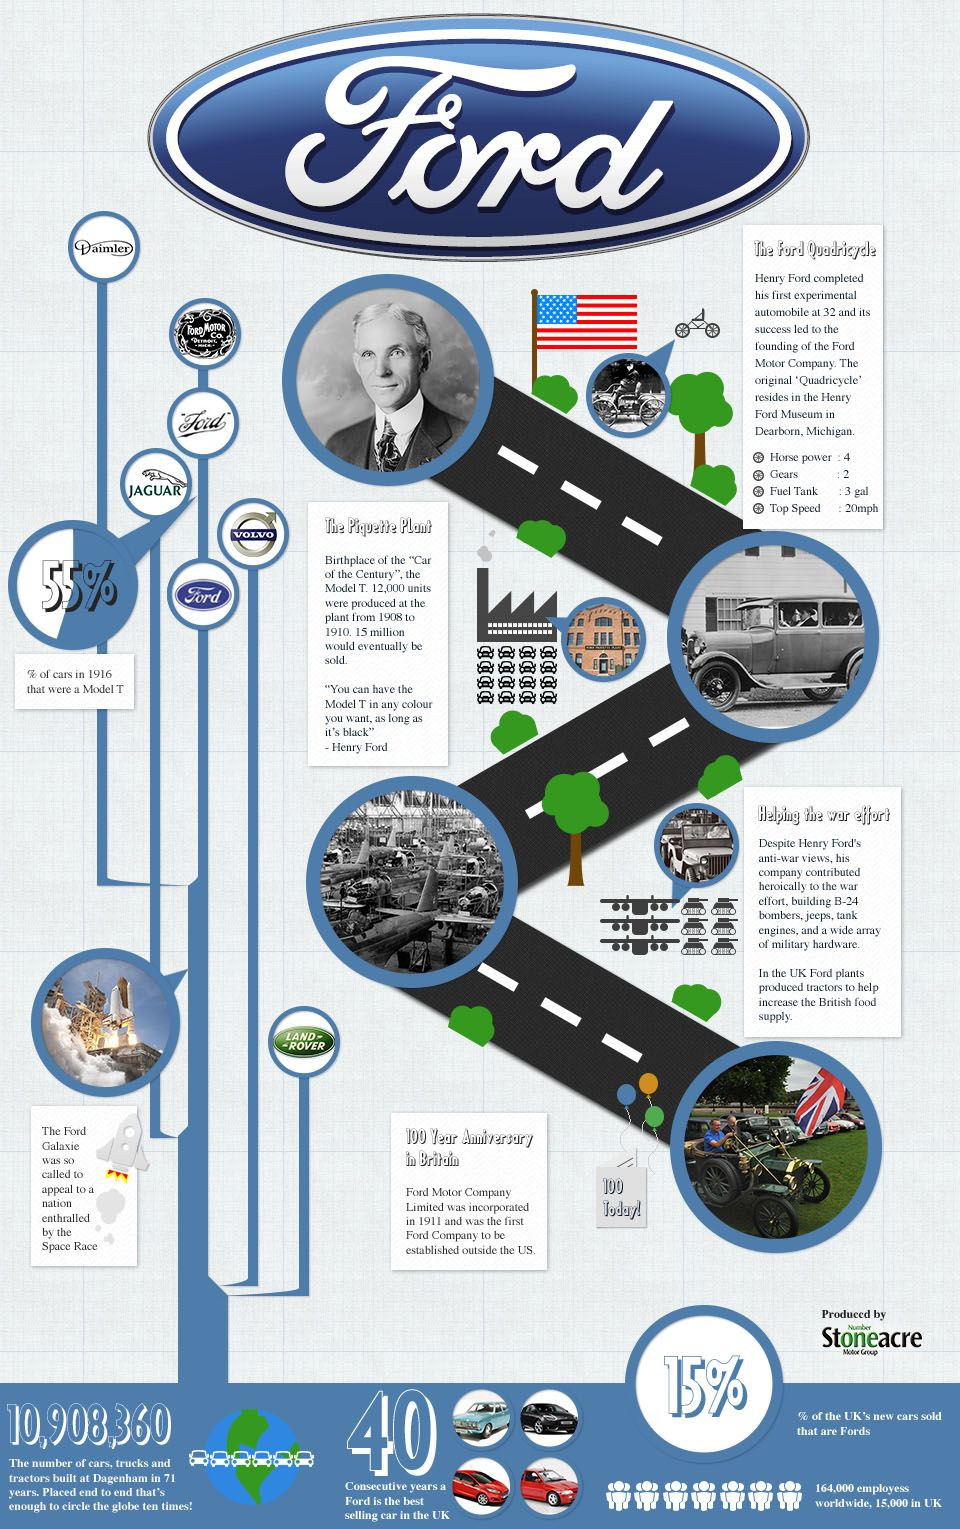 Ford motor company history founded by henry ford the motor company has a long and interesting history that is briefed in this nifty infographic